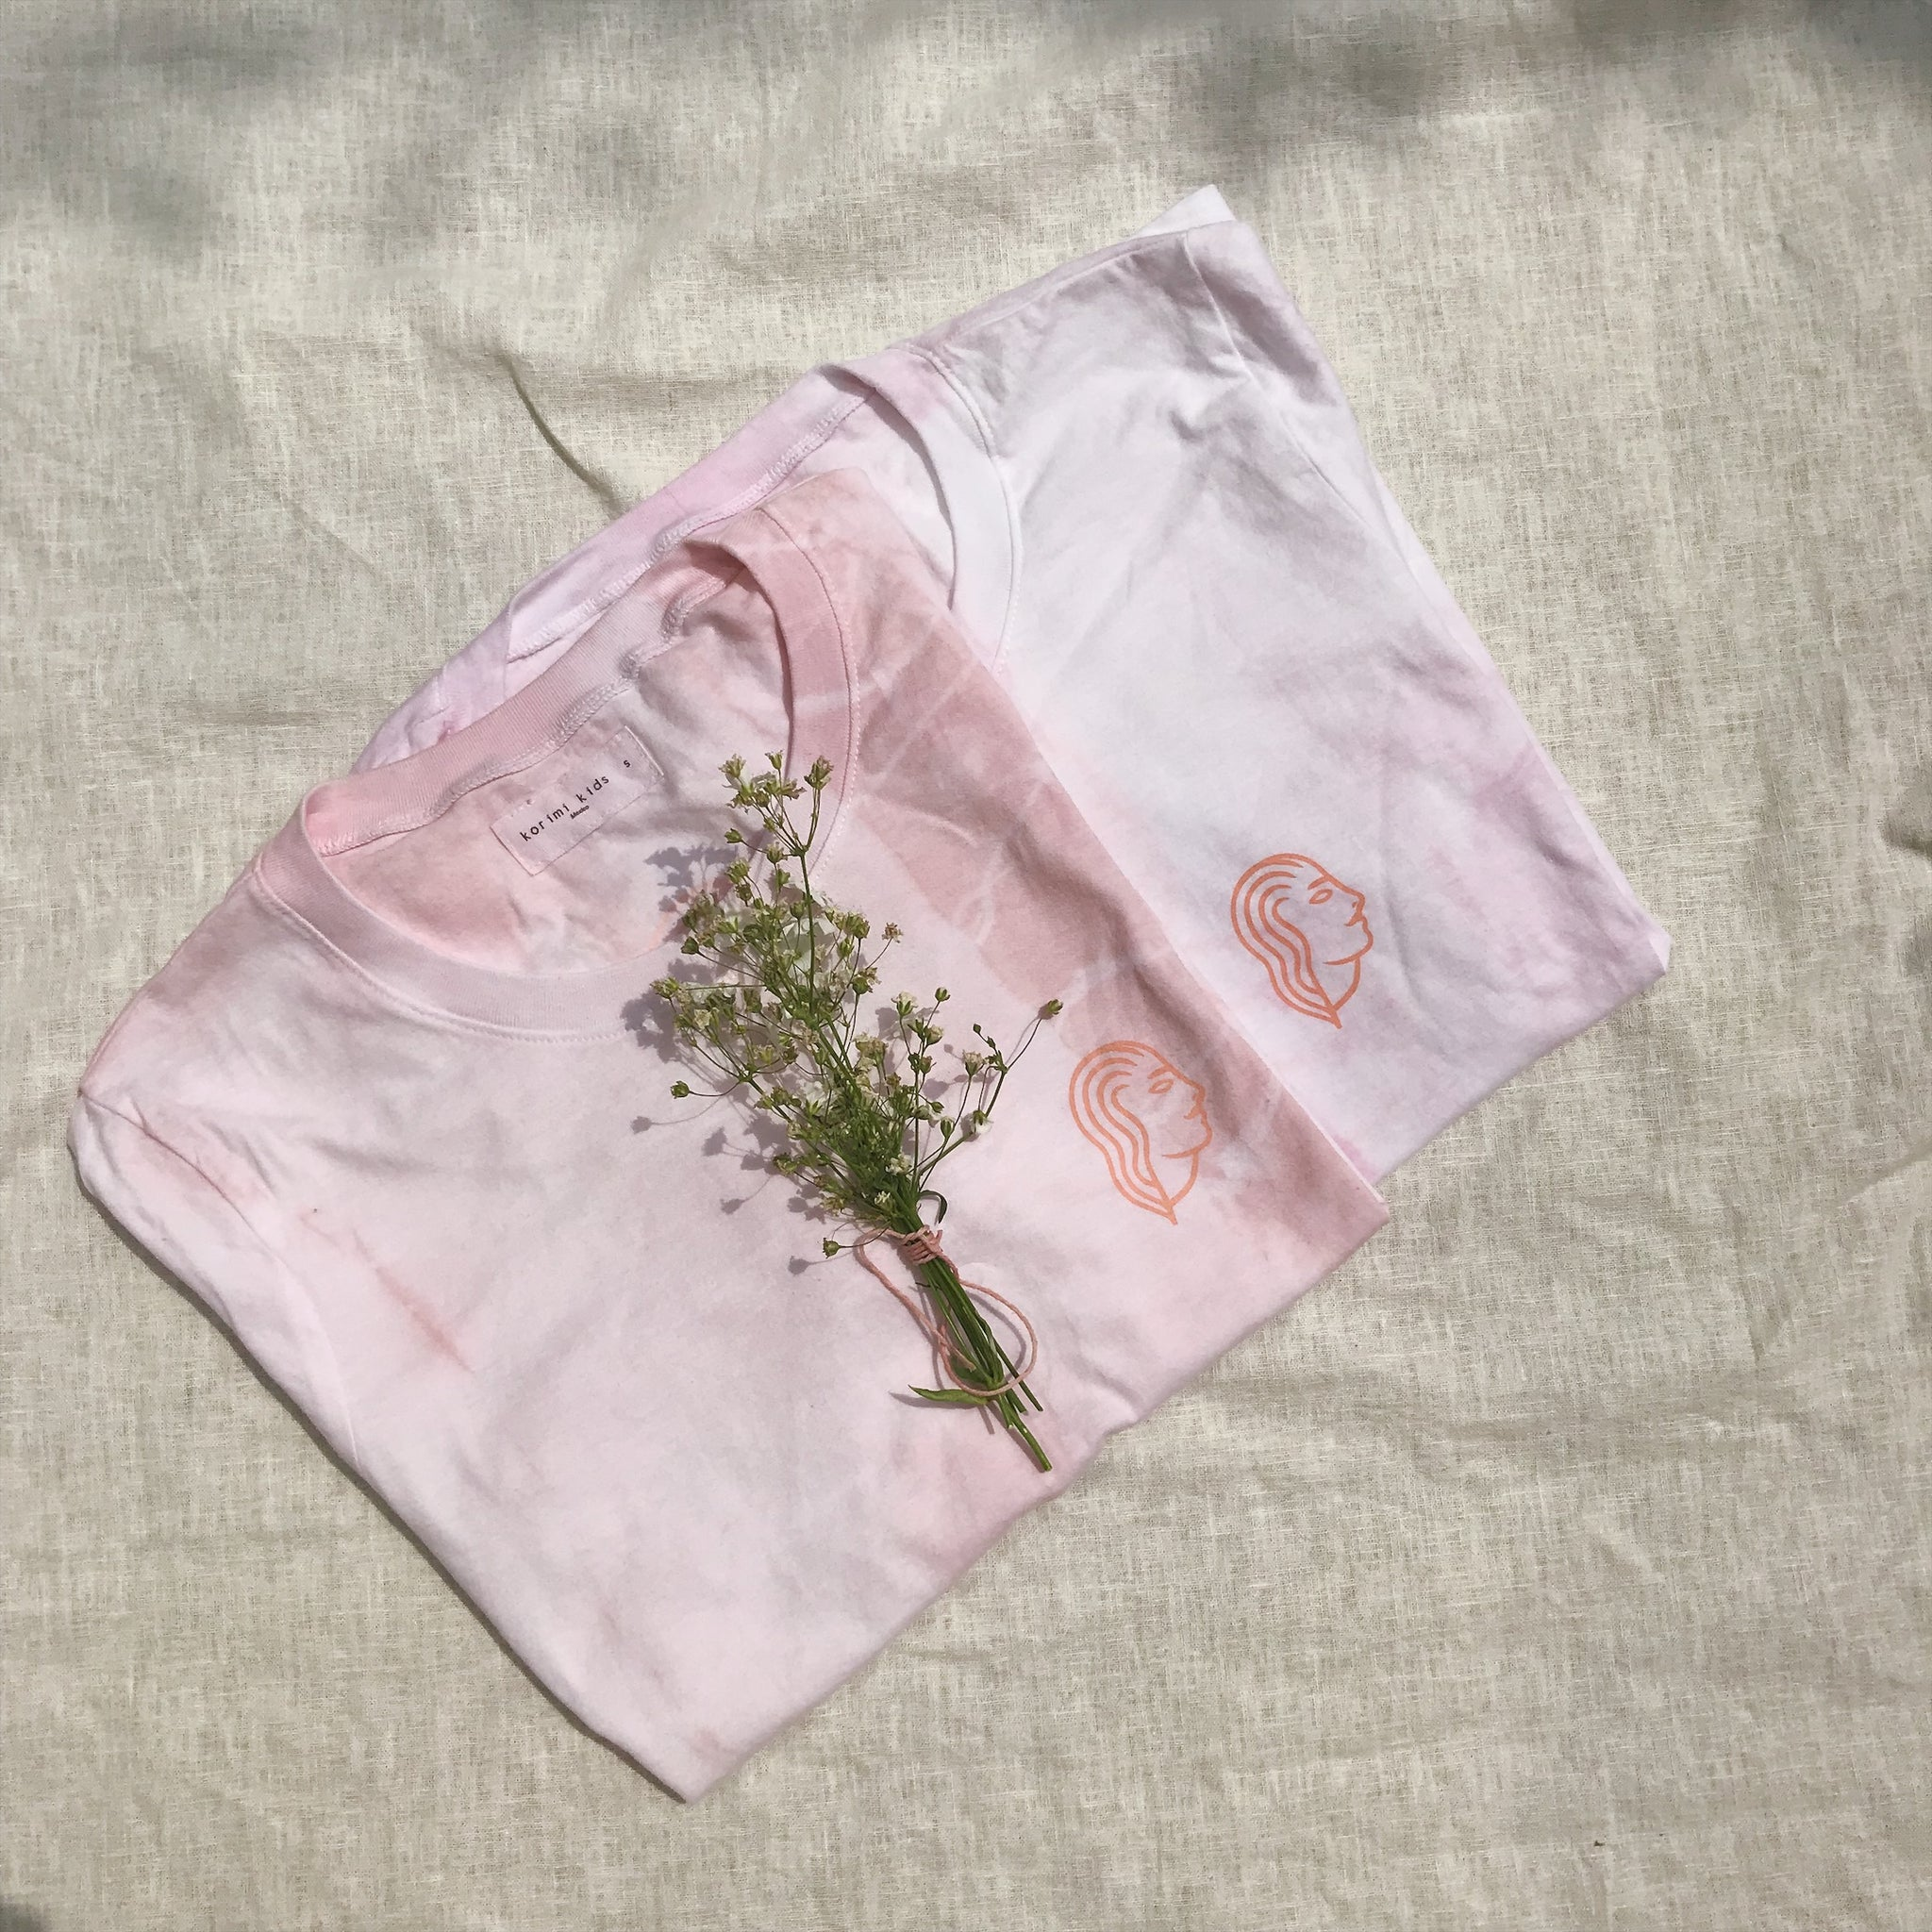 TIE DYE TEE - MOTHER